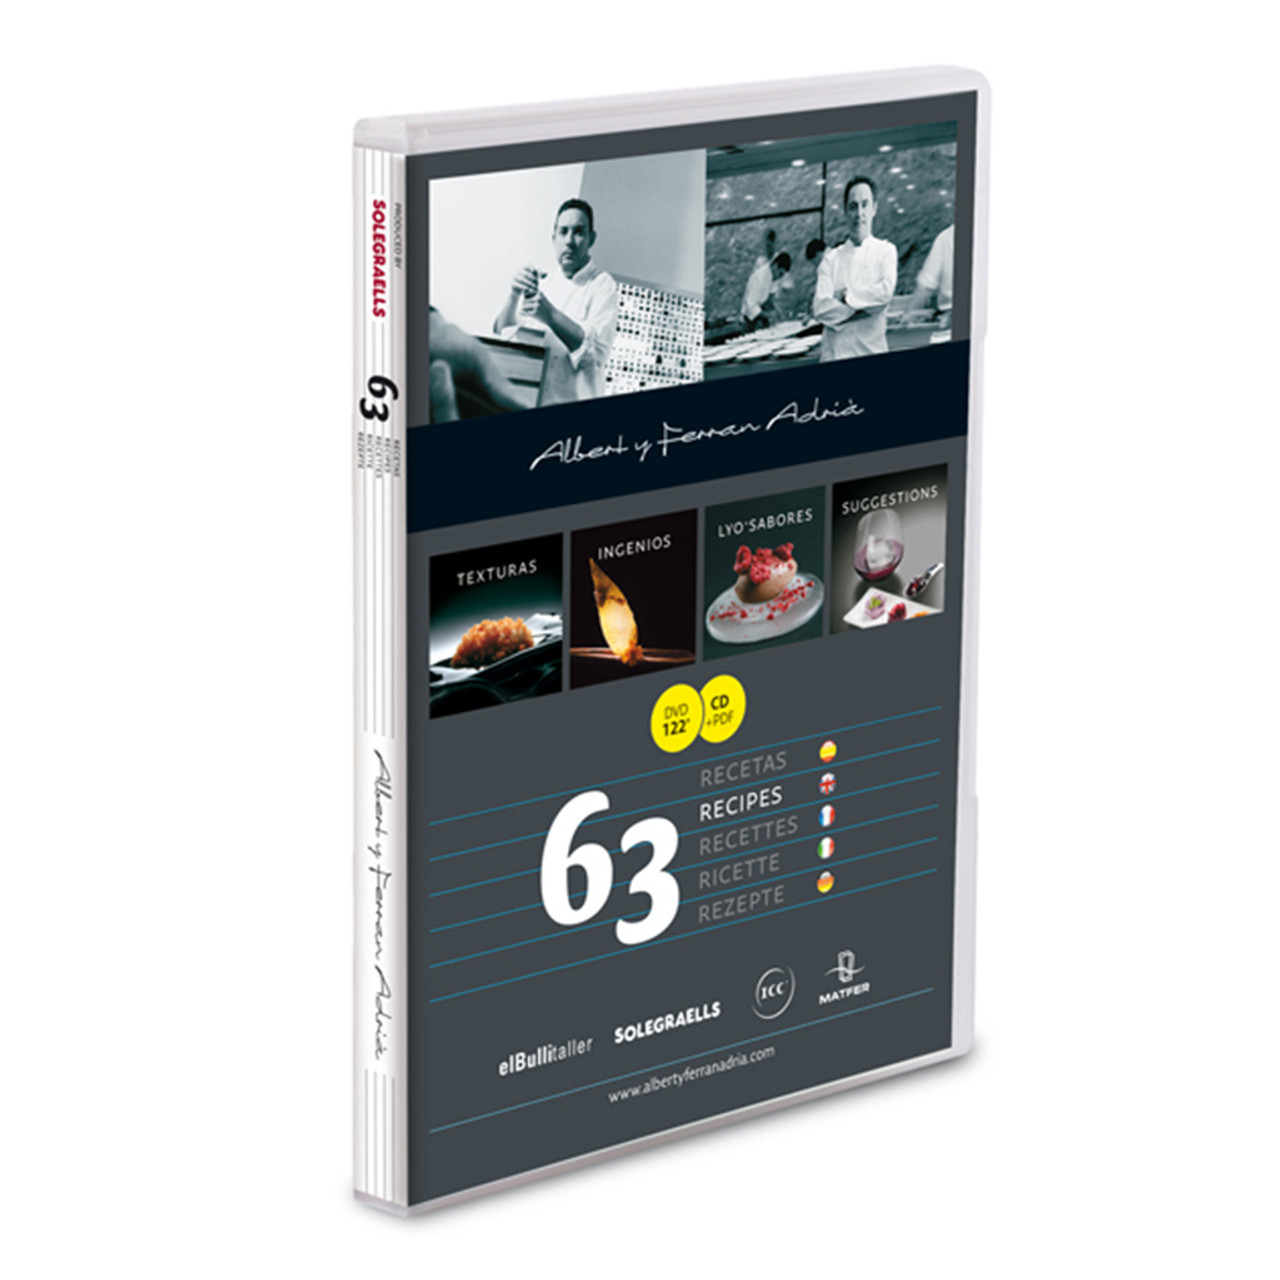 elBulli 63 Recipe DVD